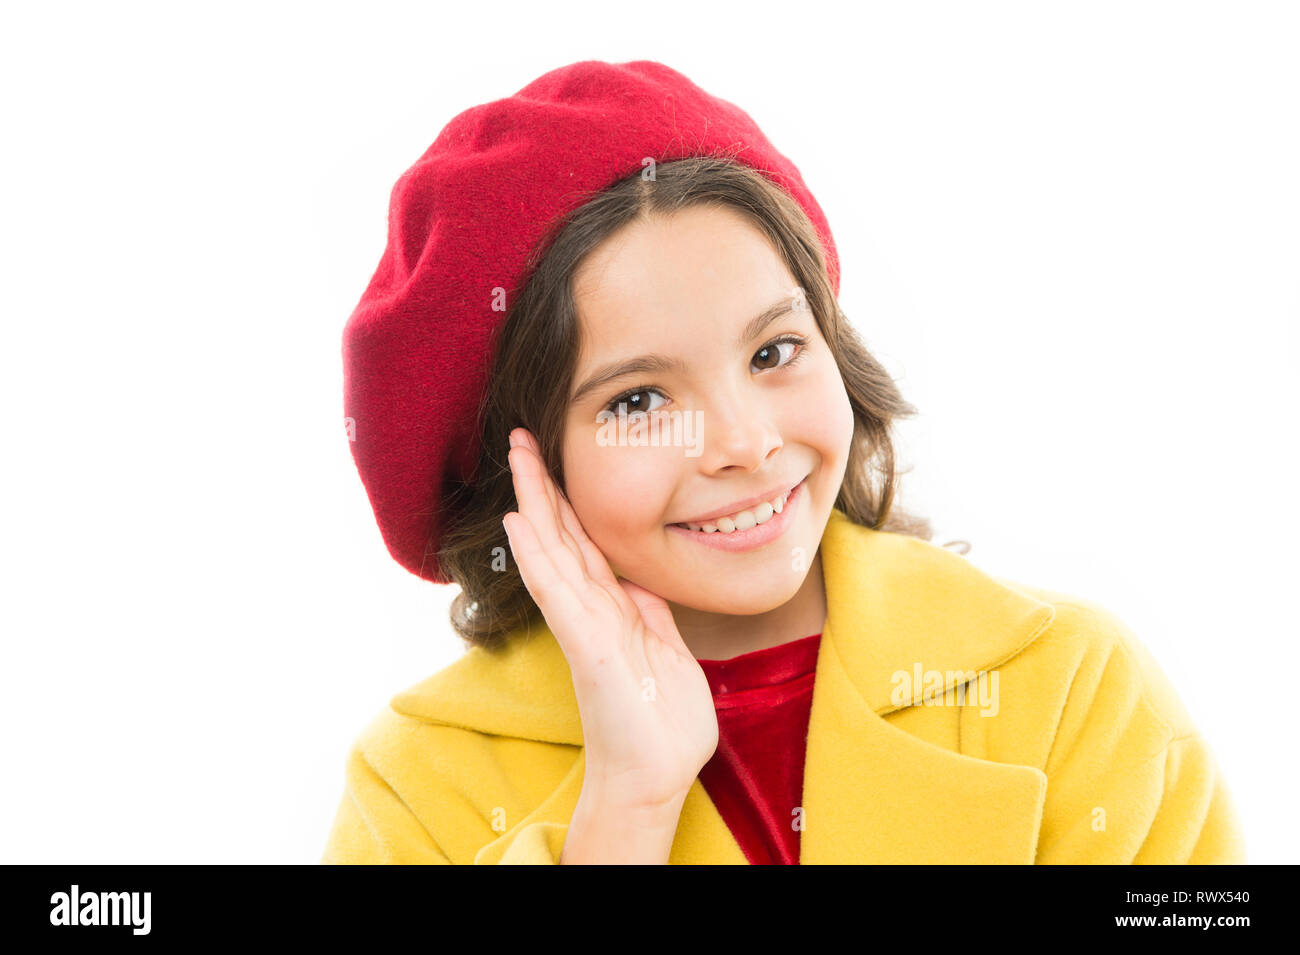 Dreamy mood. Fashionable beret accessory for female. Spring fashion. Fashion accessory for little kids. Dress up like fashion girl. Kid little cute girl smiling face posing in hat isolated on white. - Stock Image